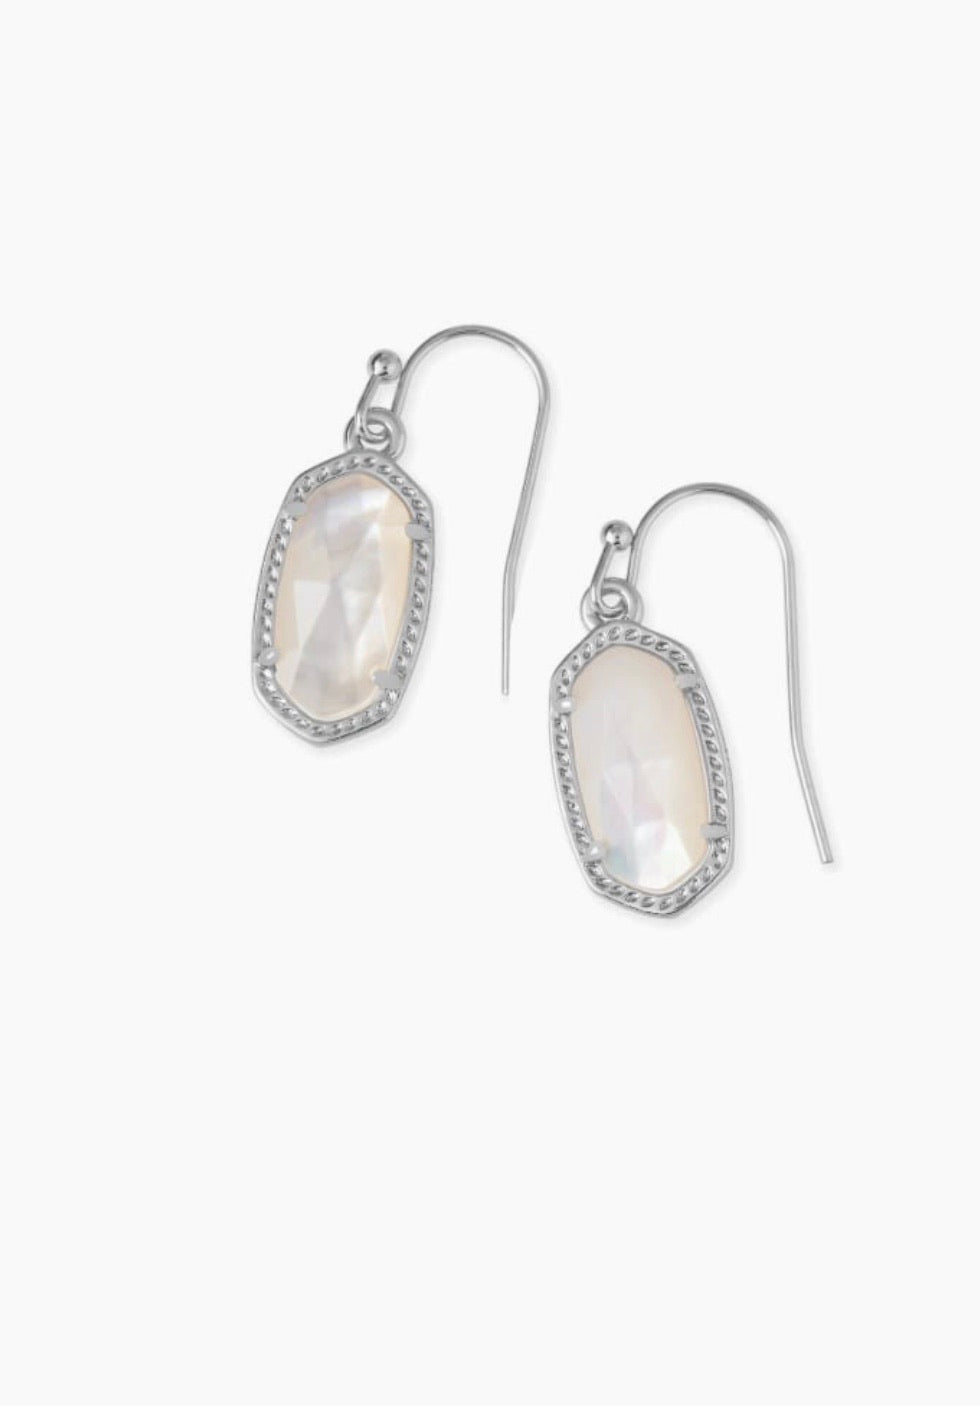 LEE SILVER DROP EARRINGS - IVORY PEARL